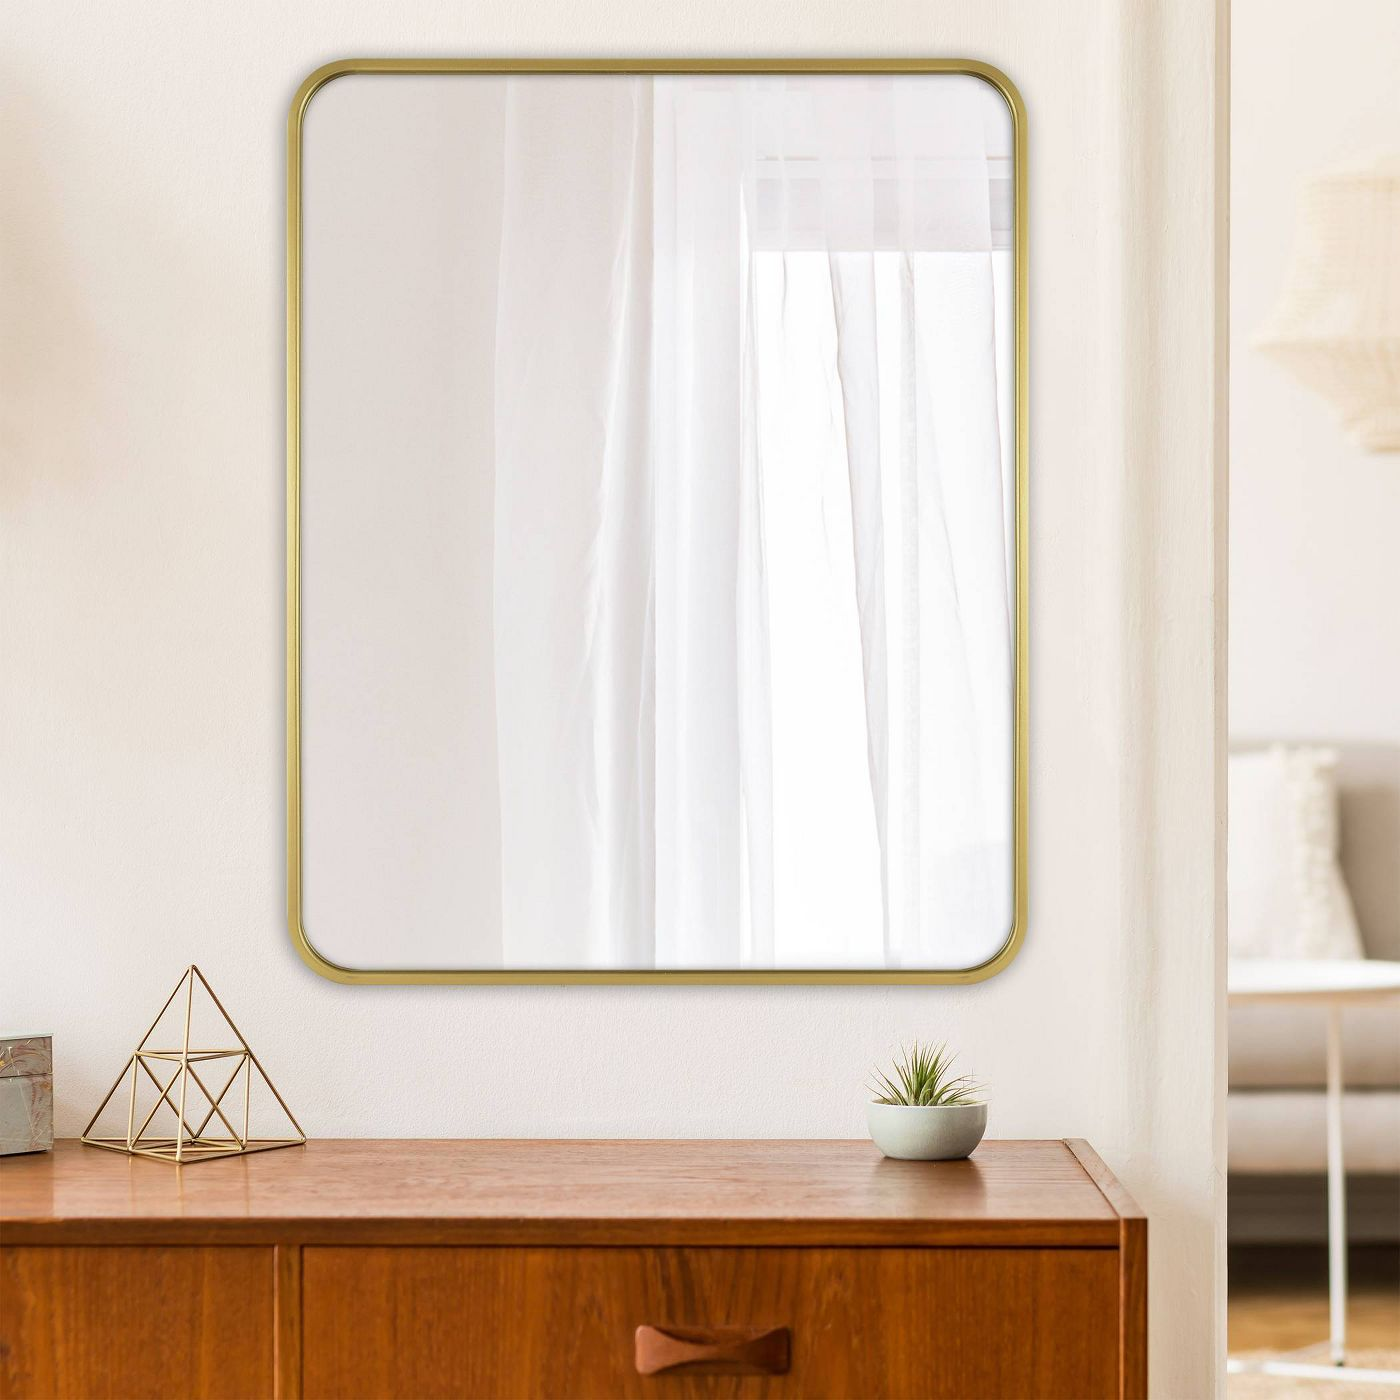 Rectangular mirror with curved edges